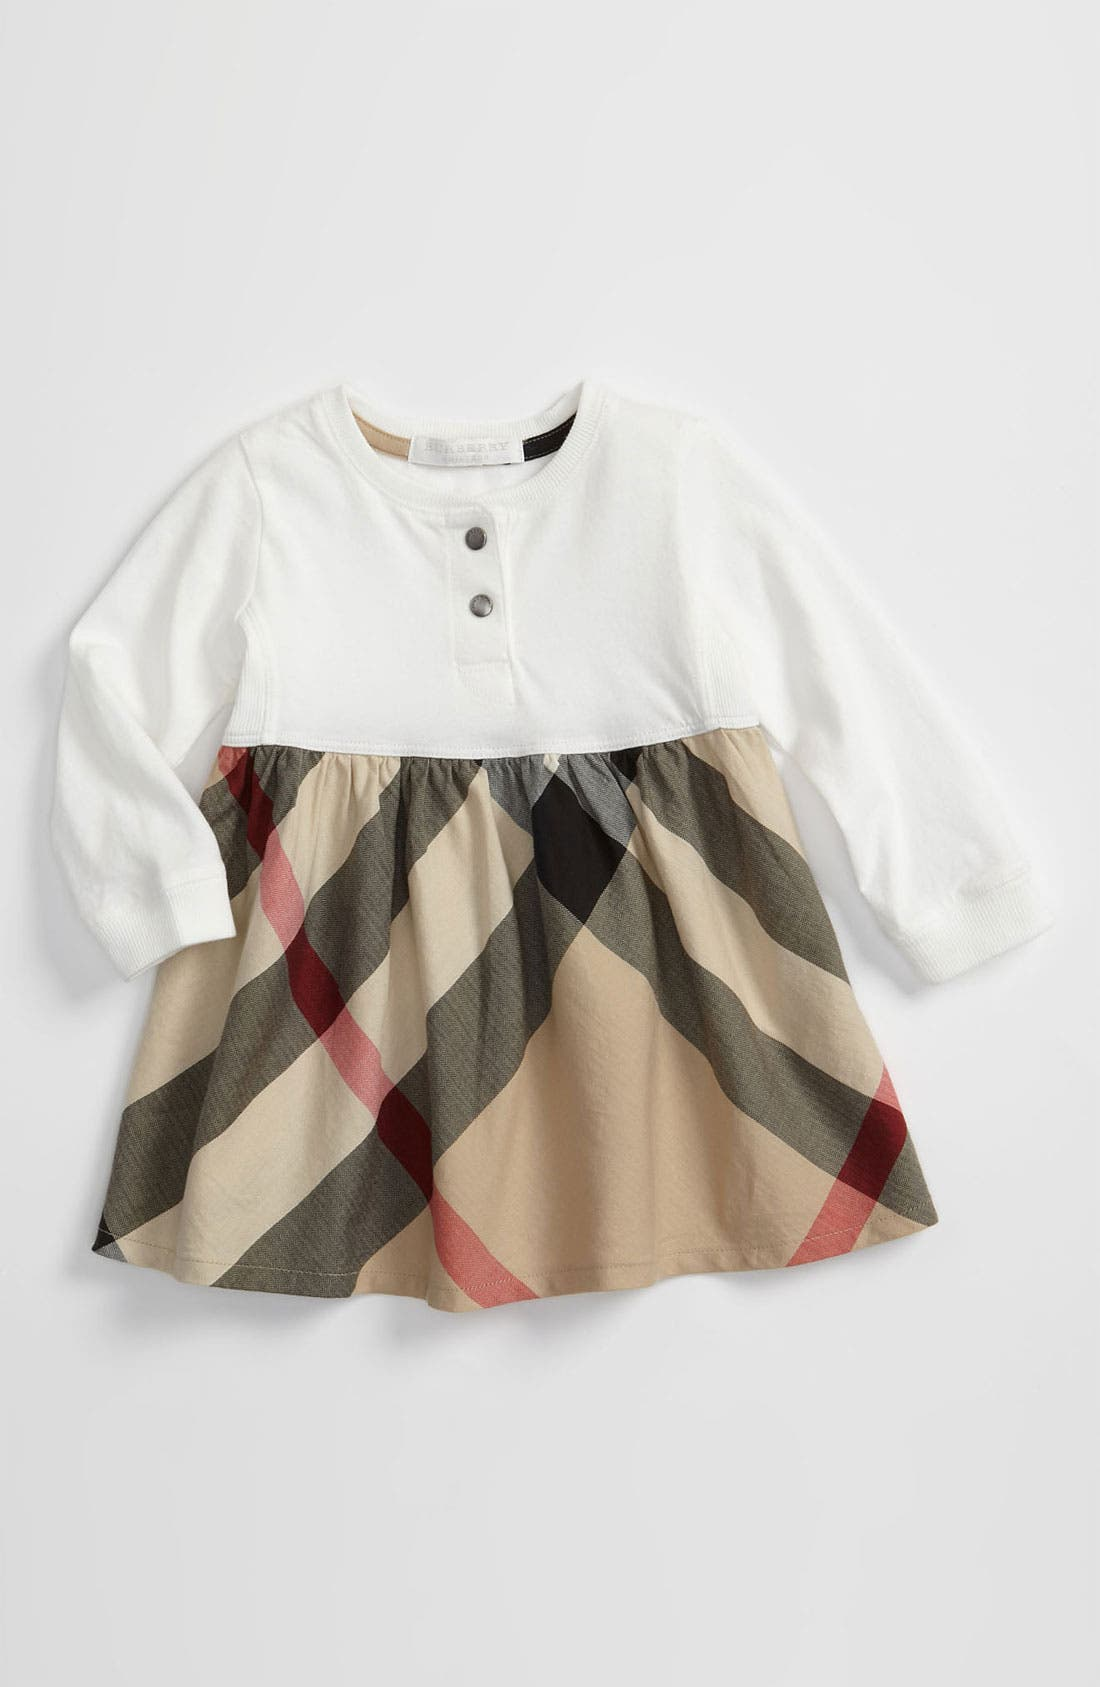 Main Image - Burberry Check Print Dress (Infant)